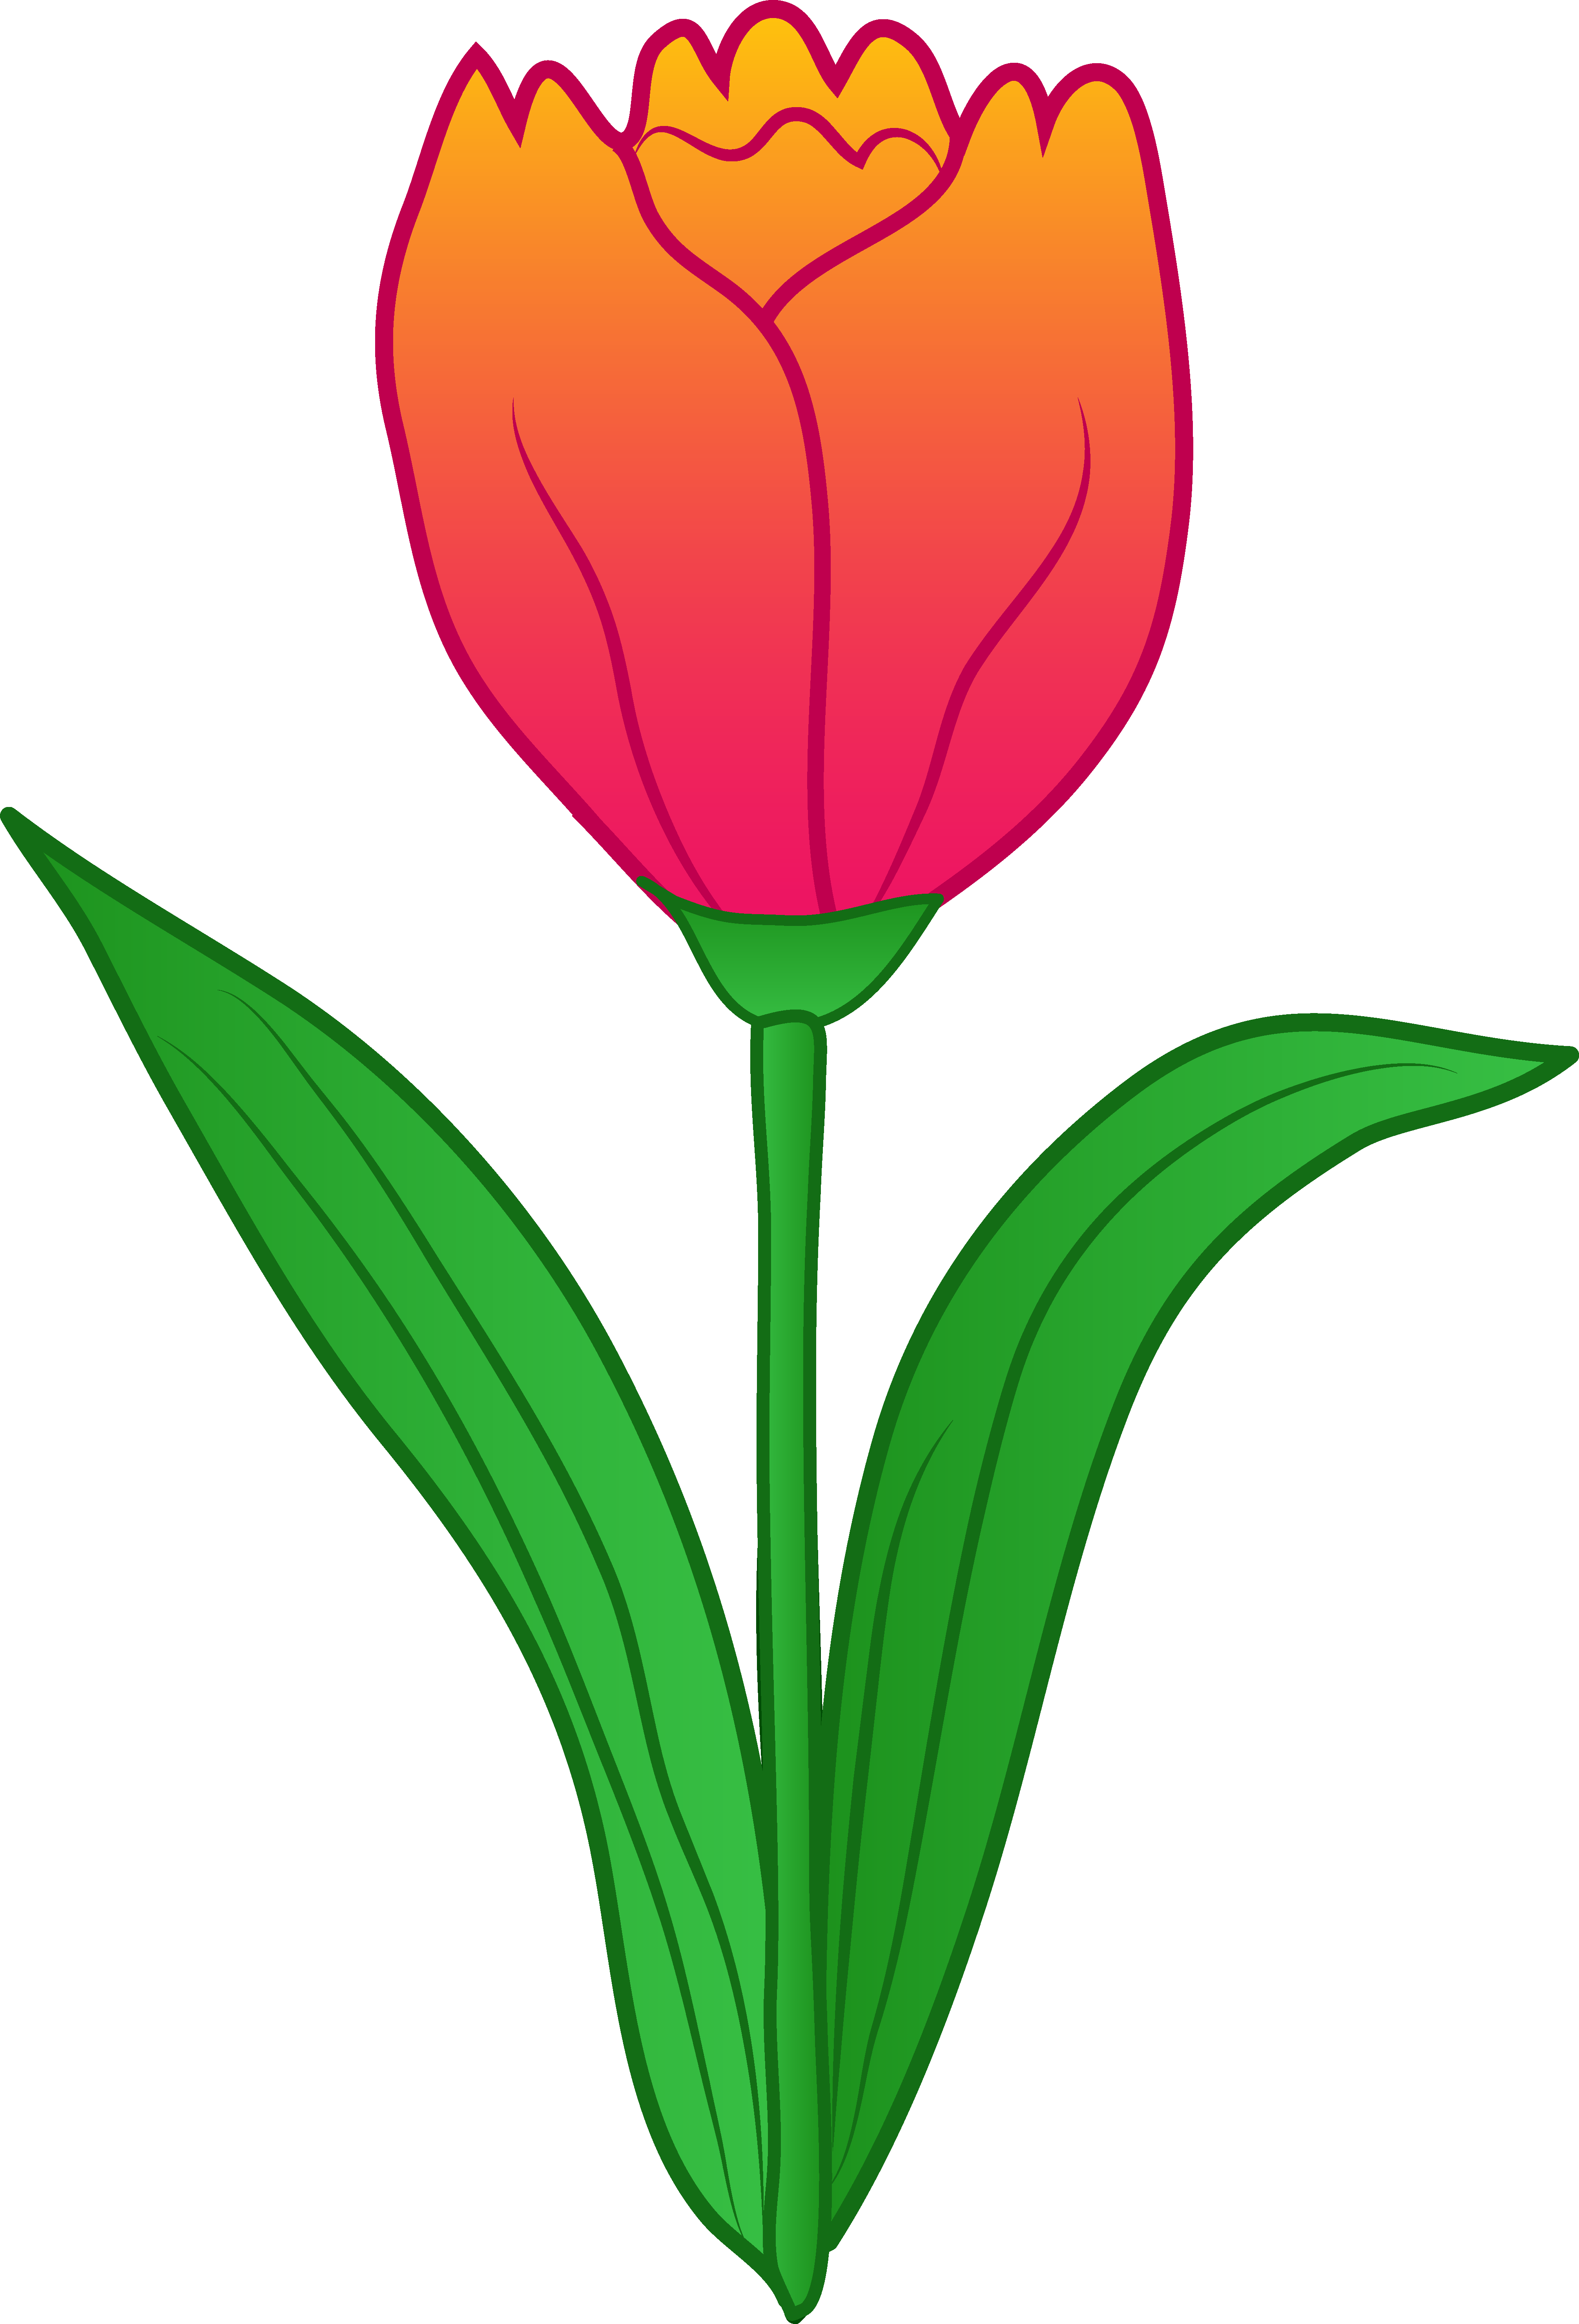 banner Tulips clipart. Daffodil flower at getdrawings.